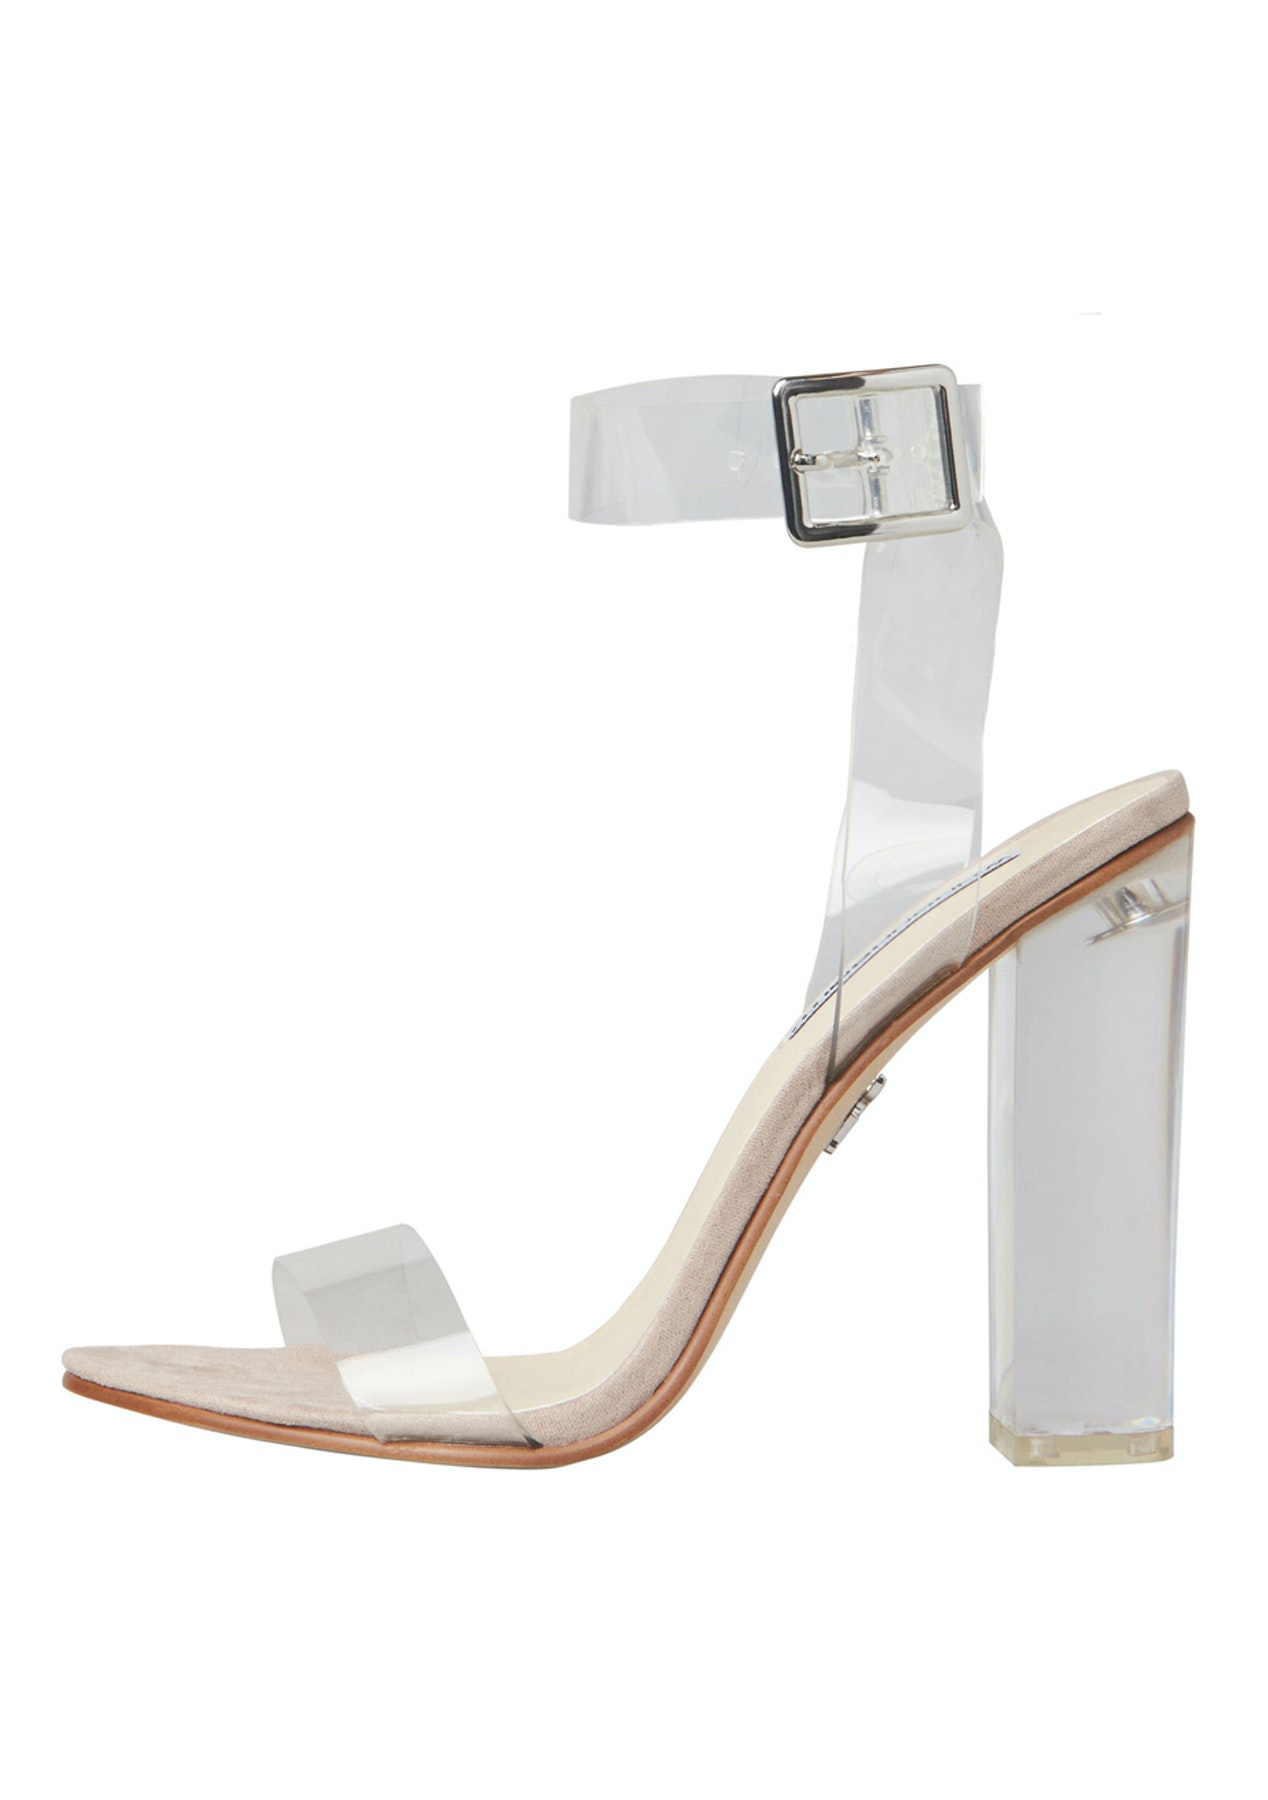 a55b29603d6 Windsor Smith - Gemma - Clear - Shoe Sell Out - Onceit